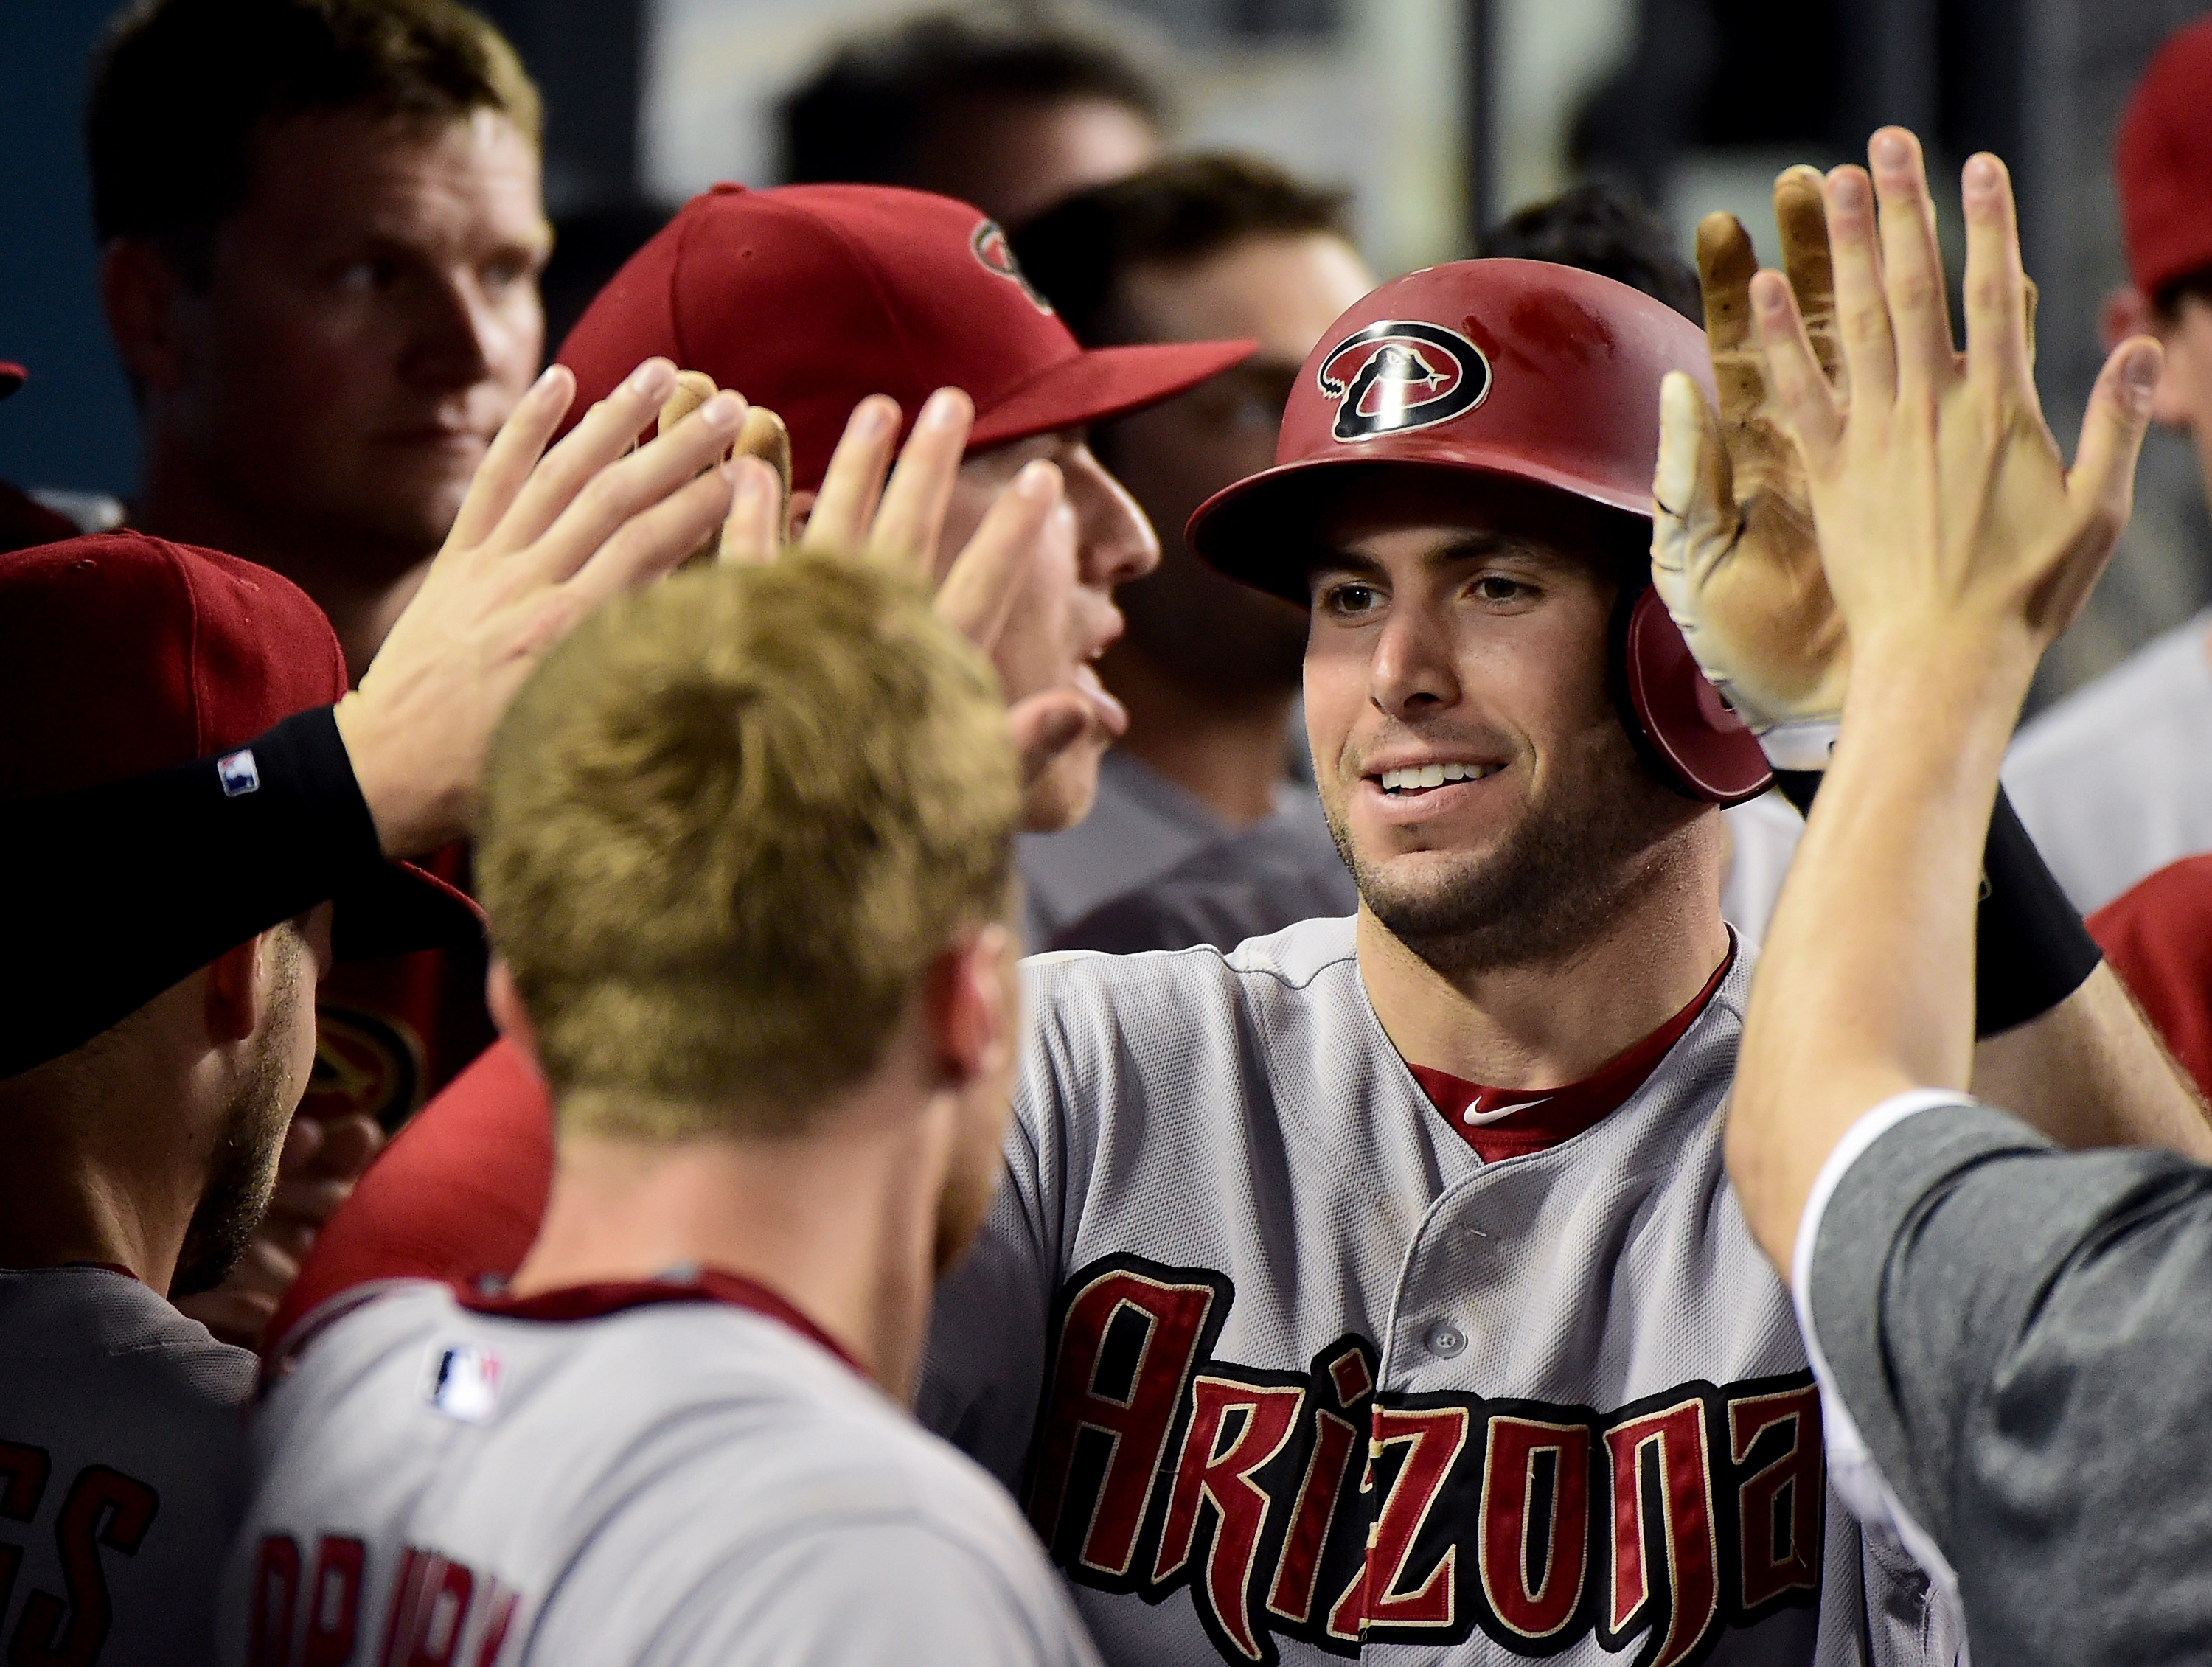 Goldy has just hit a Homerun against the Dodgers on 21 September 2015.